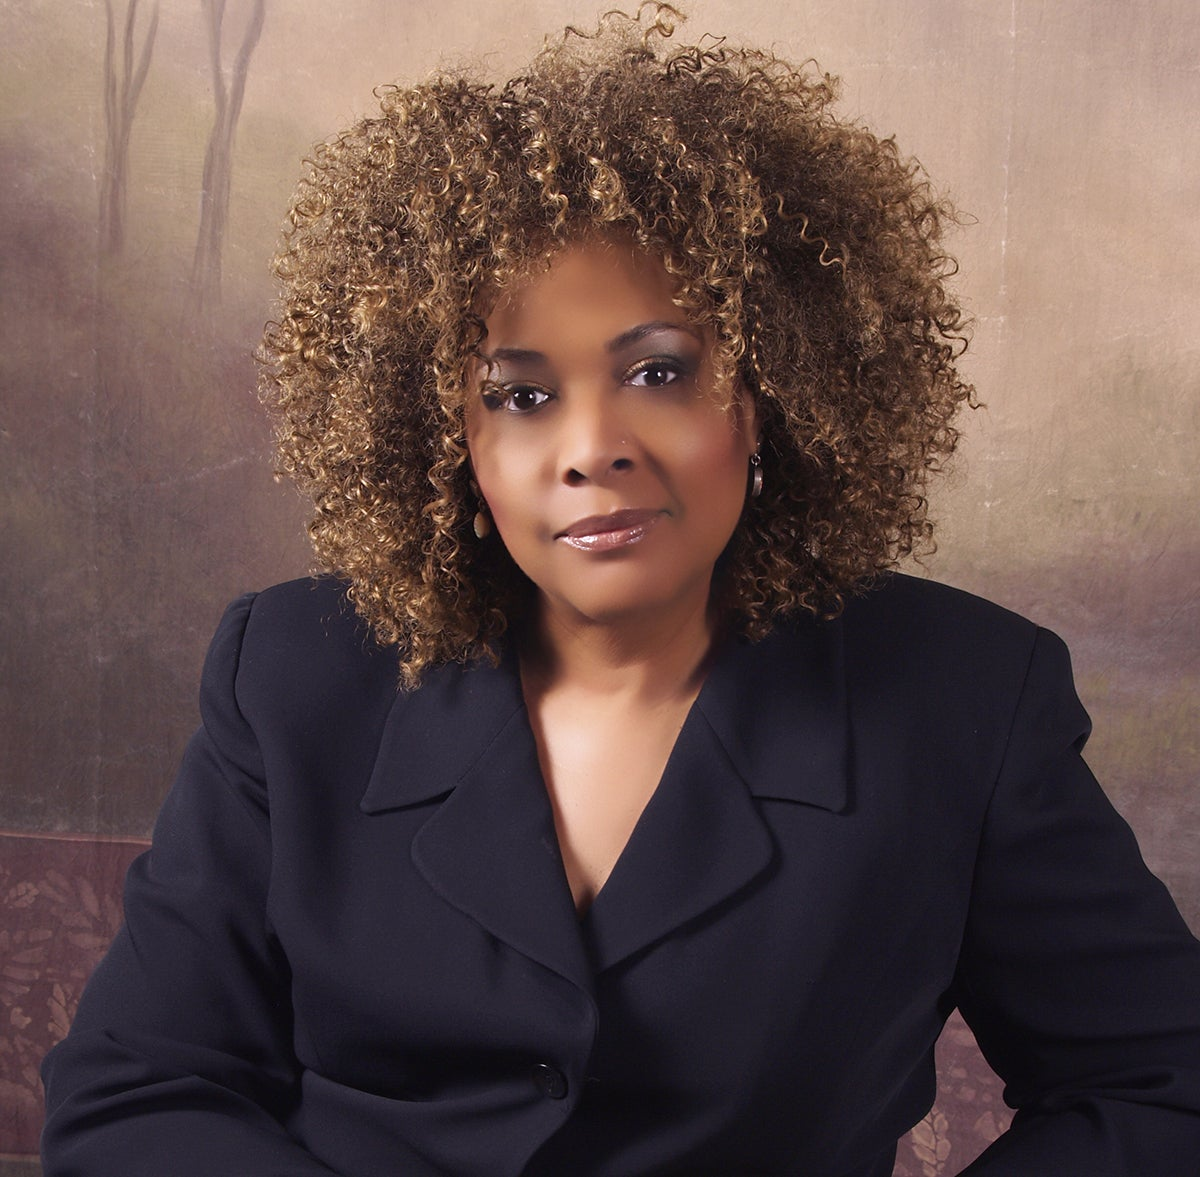 Julie Dash Joins The Second Season Of 'Queen Sugar'